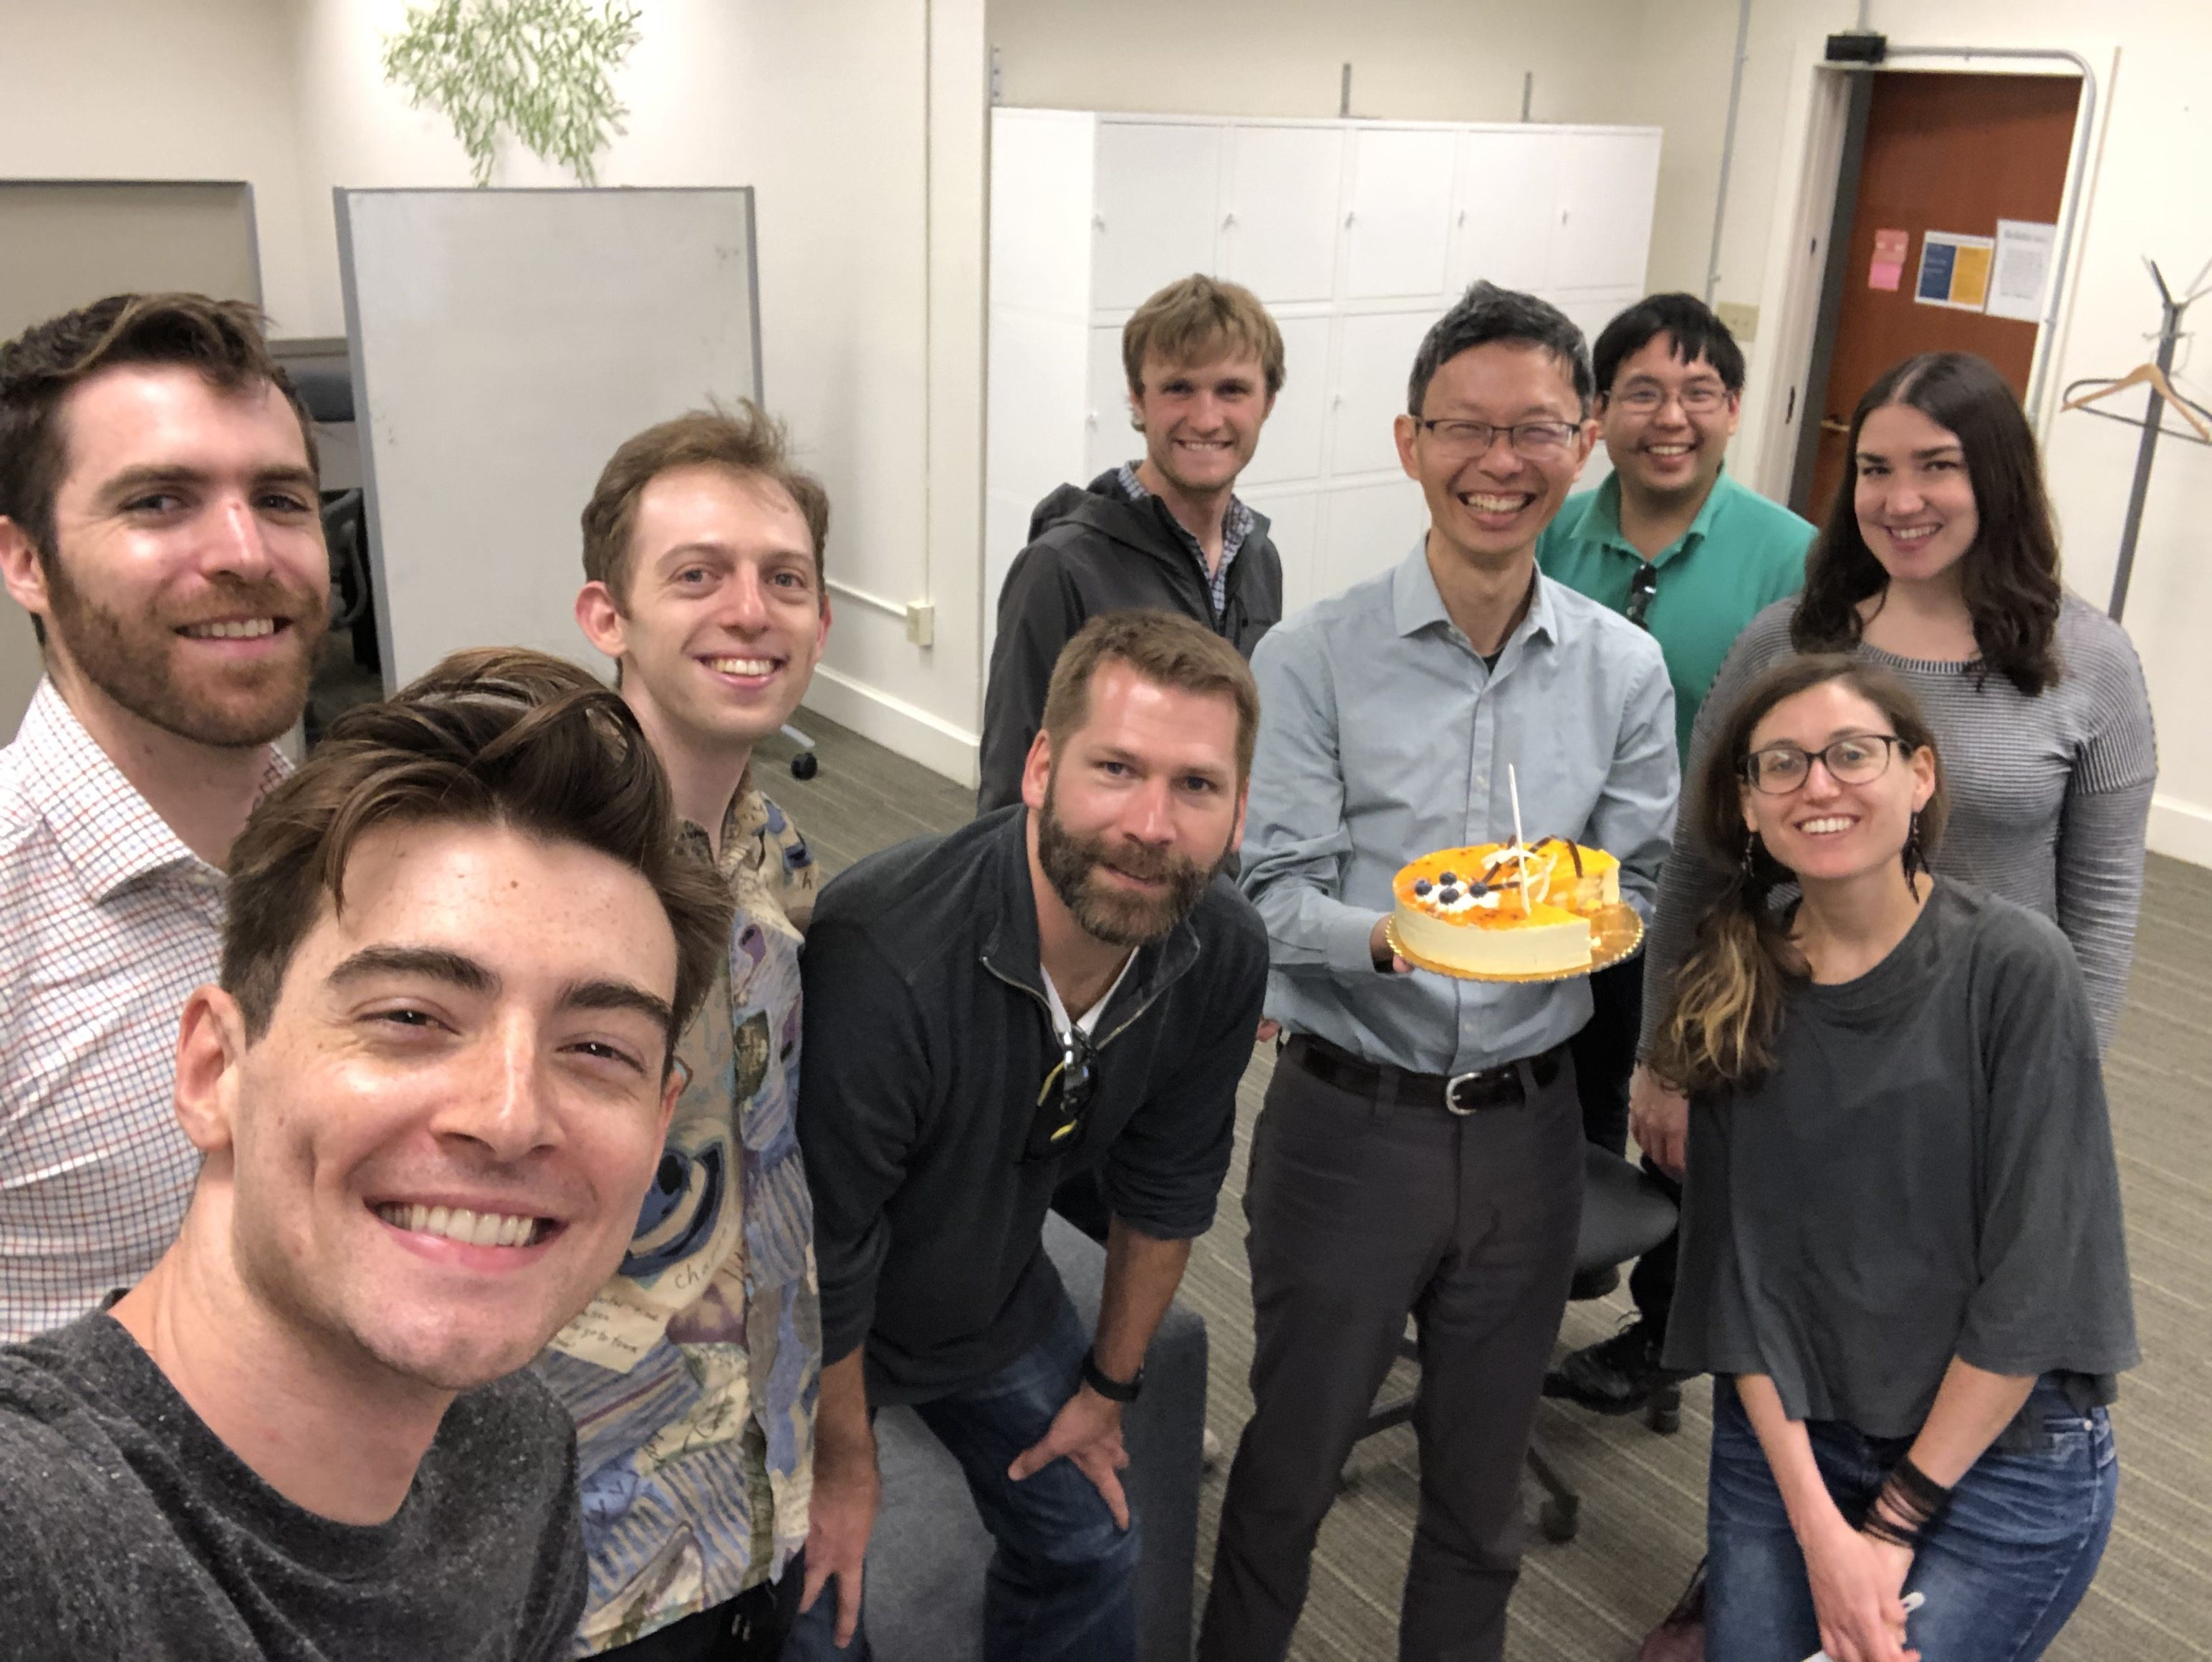 People gathered around smiling and John is holding a cake.